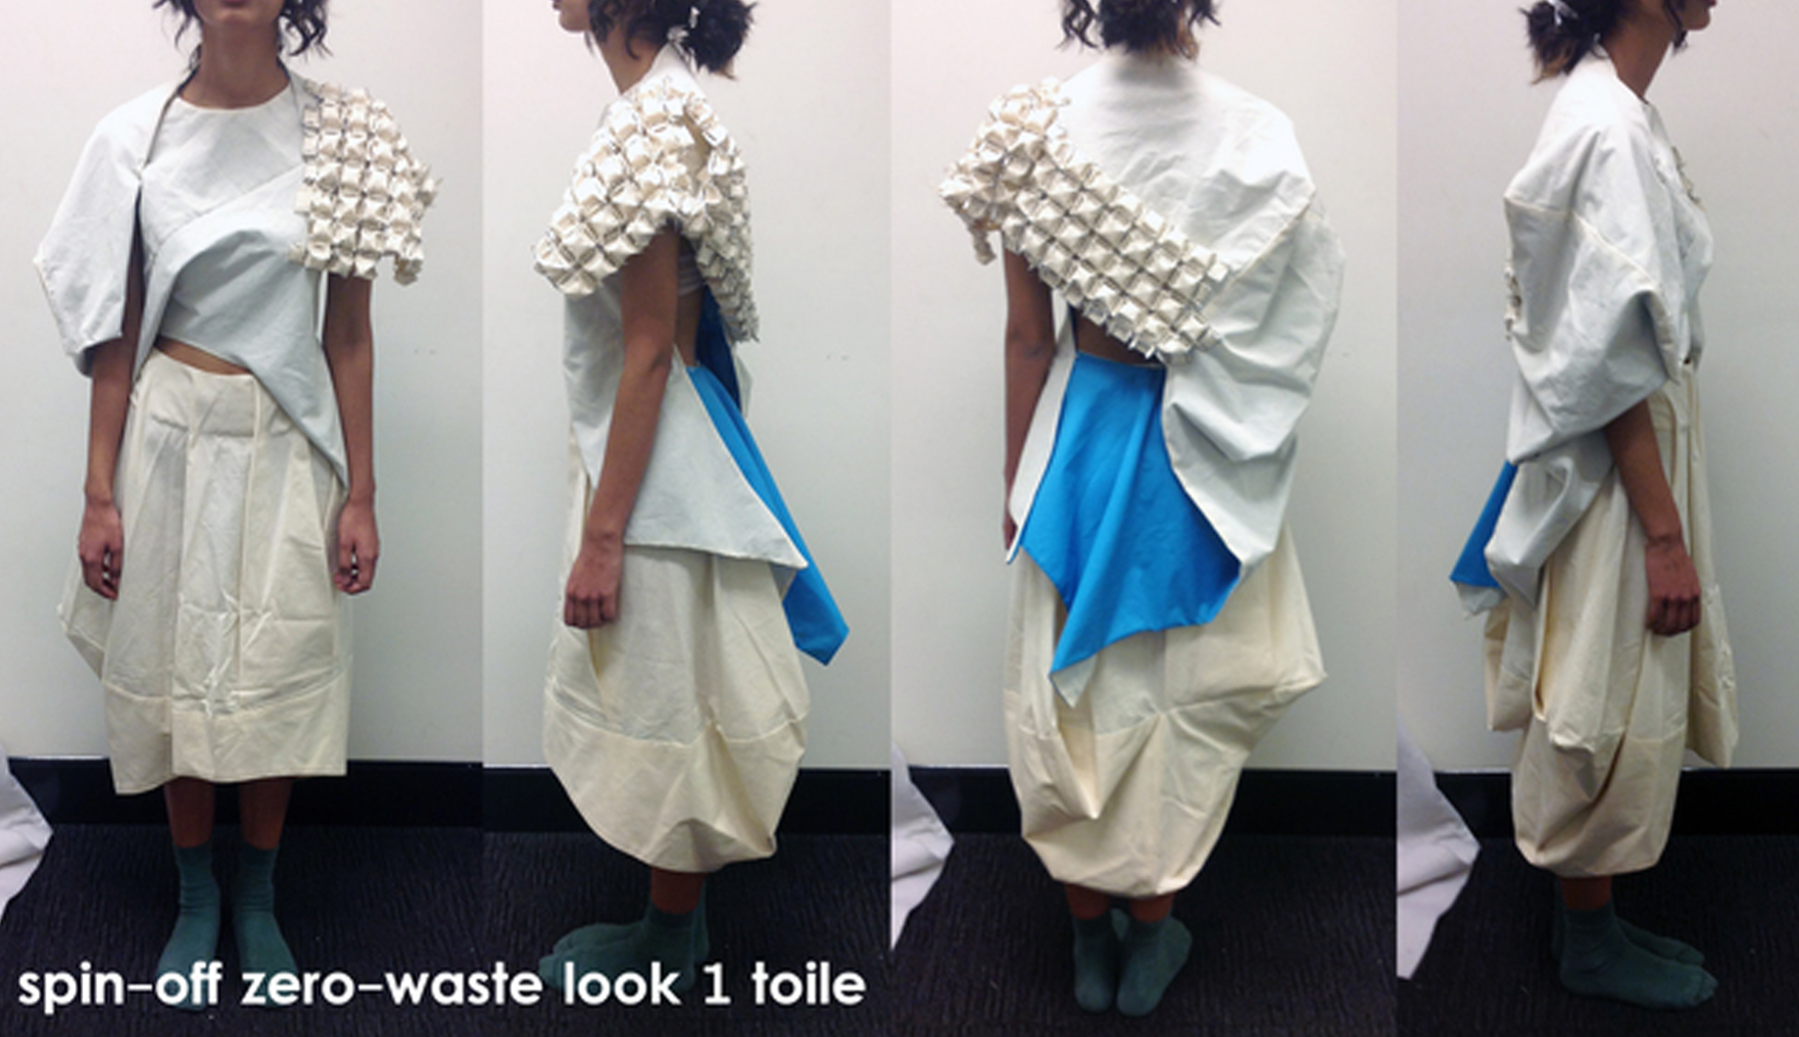 Zero-waste skirt & bodice